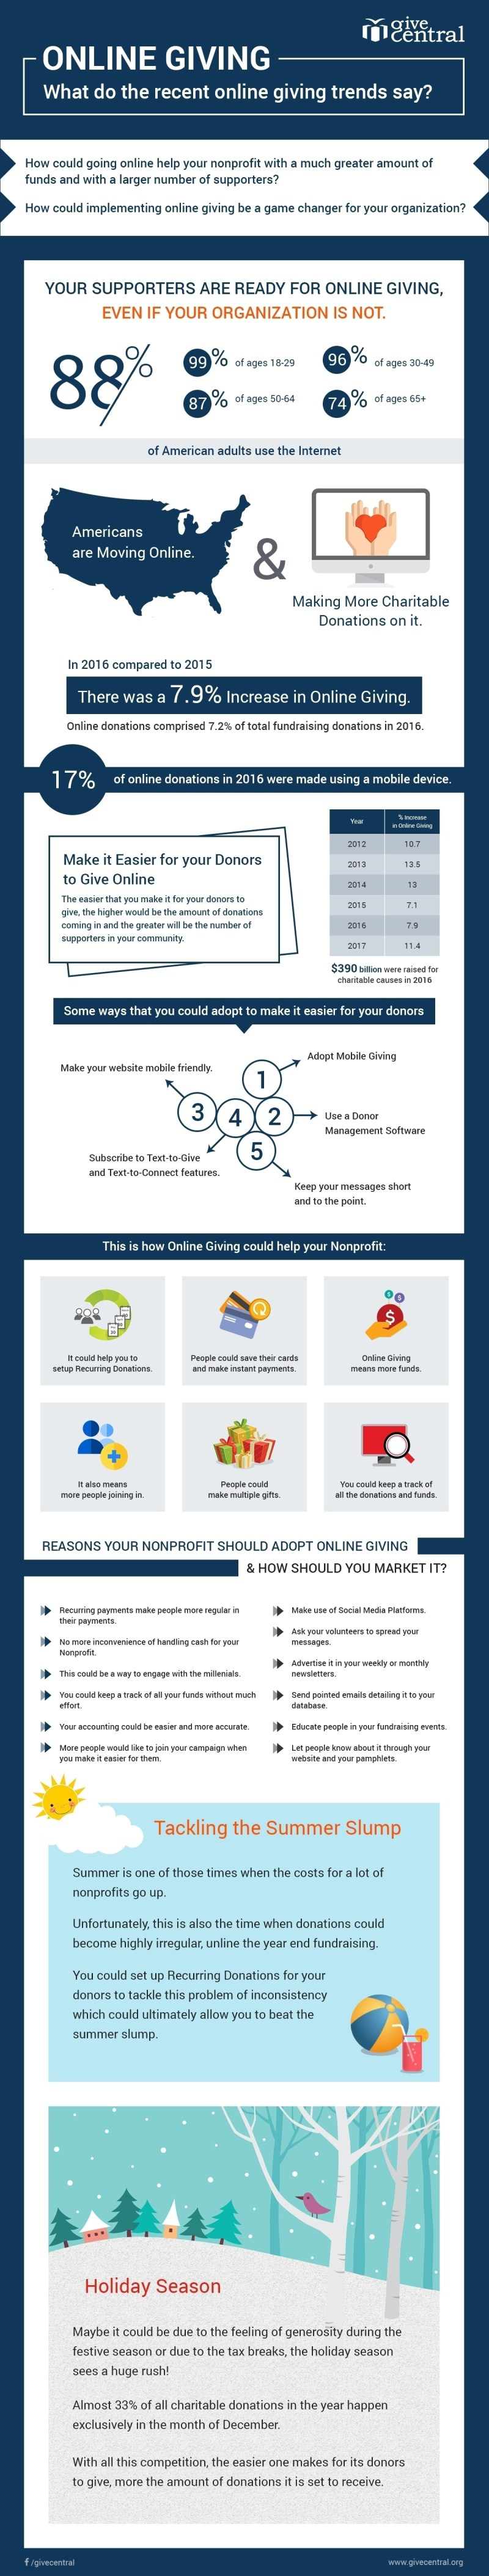 online giving infographic